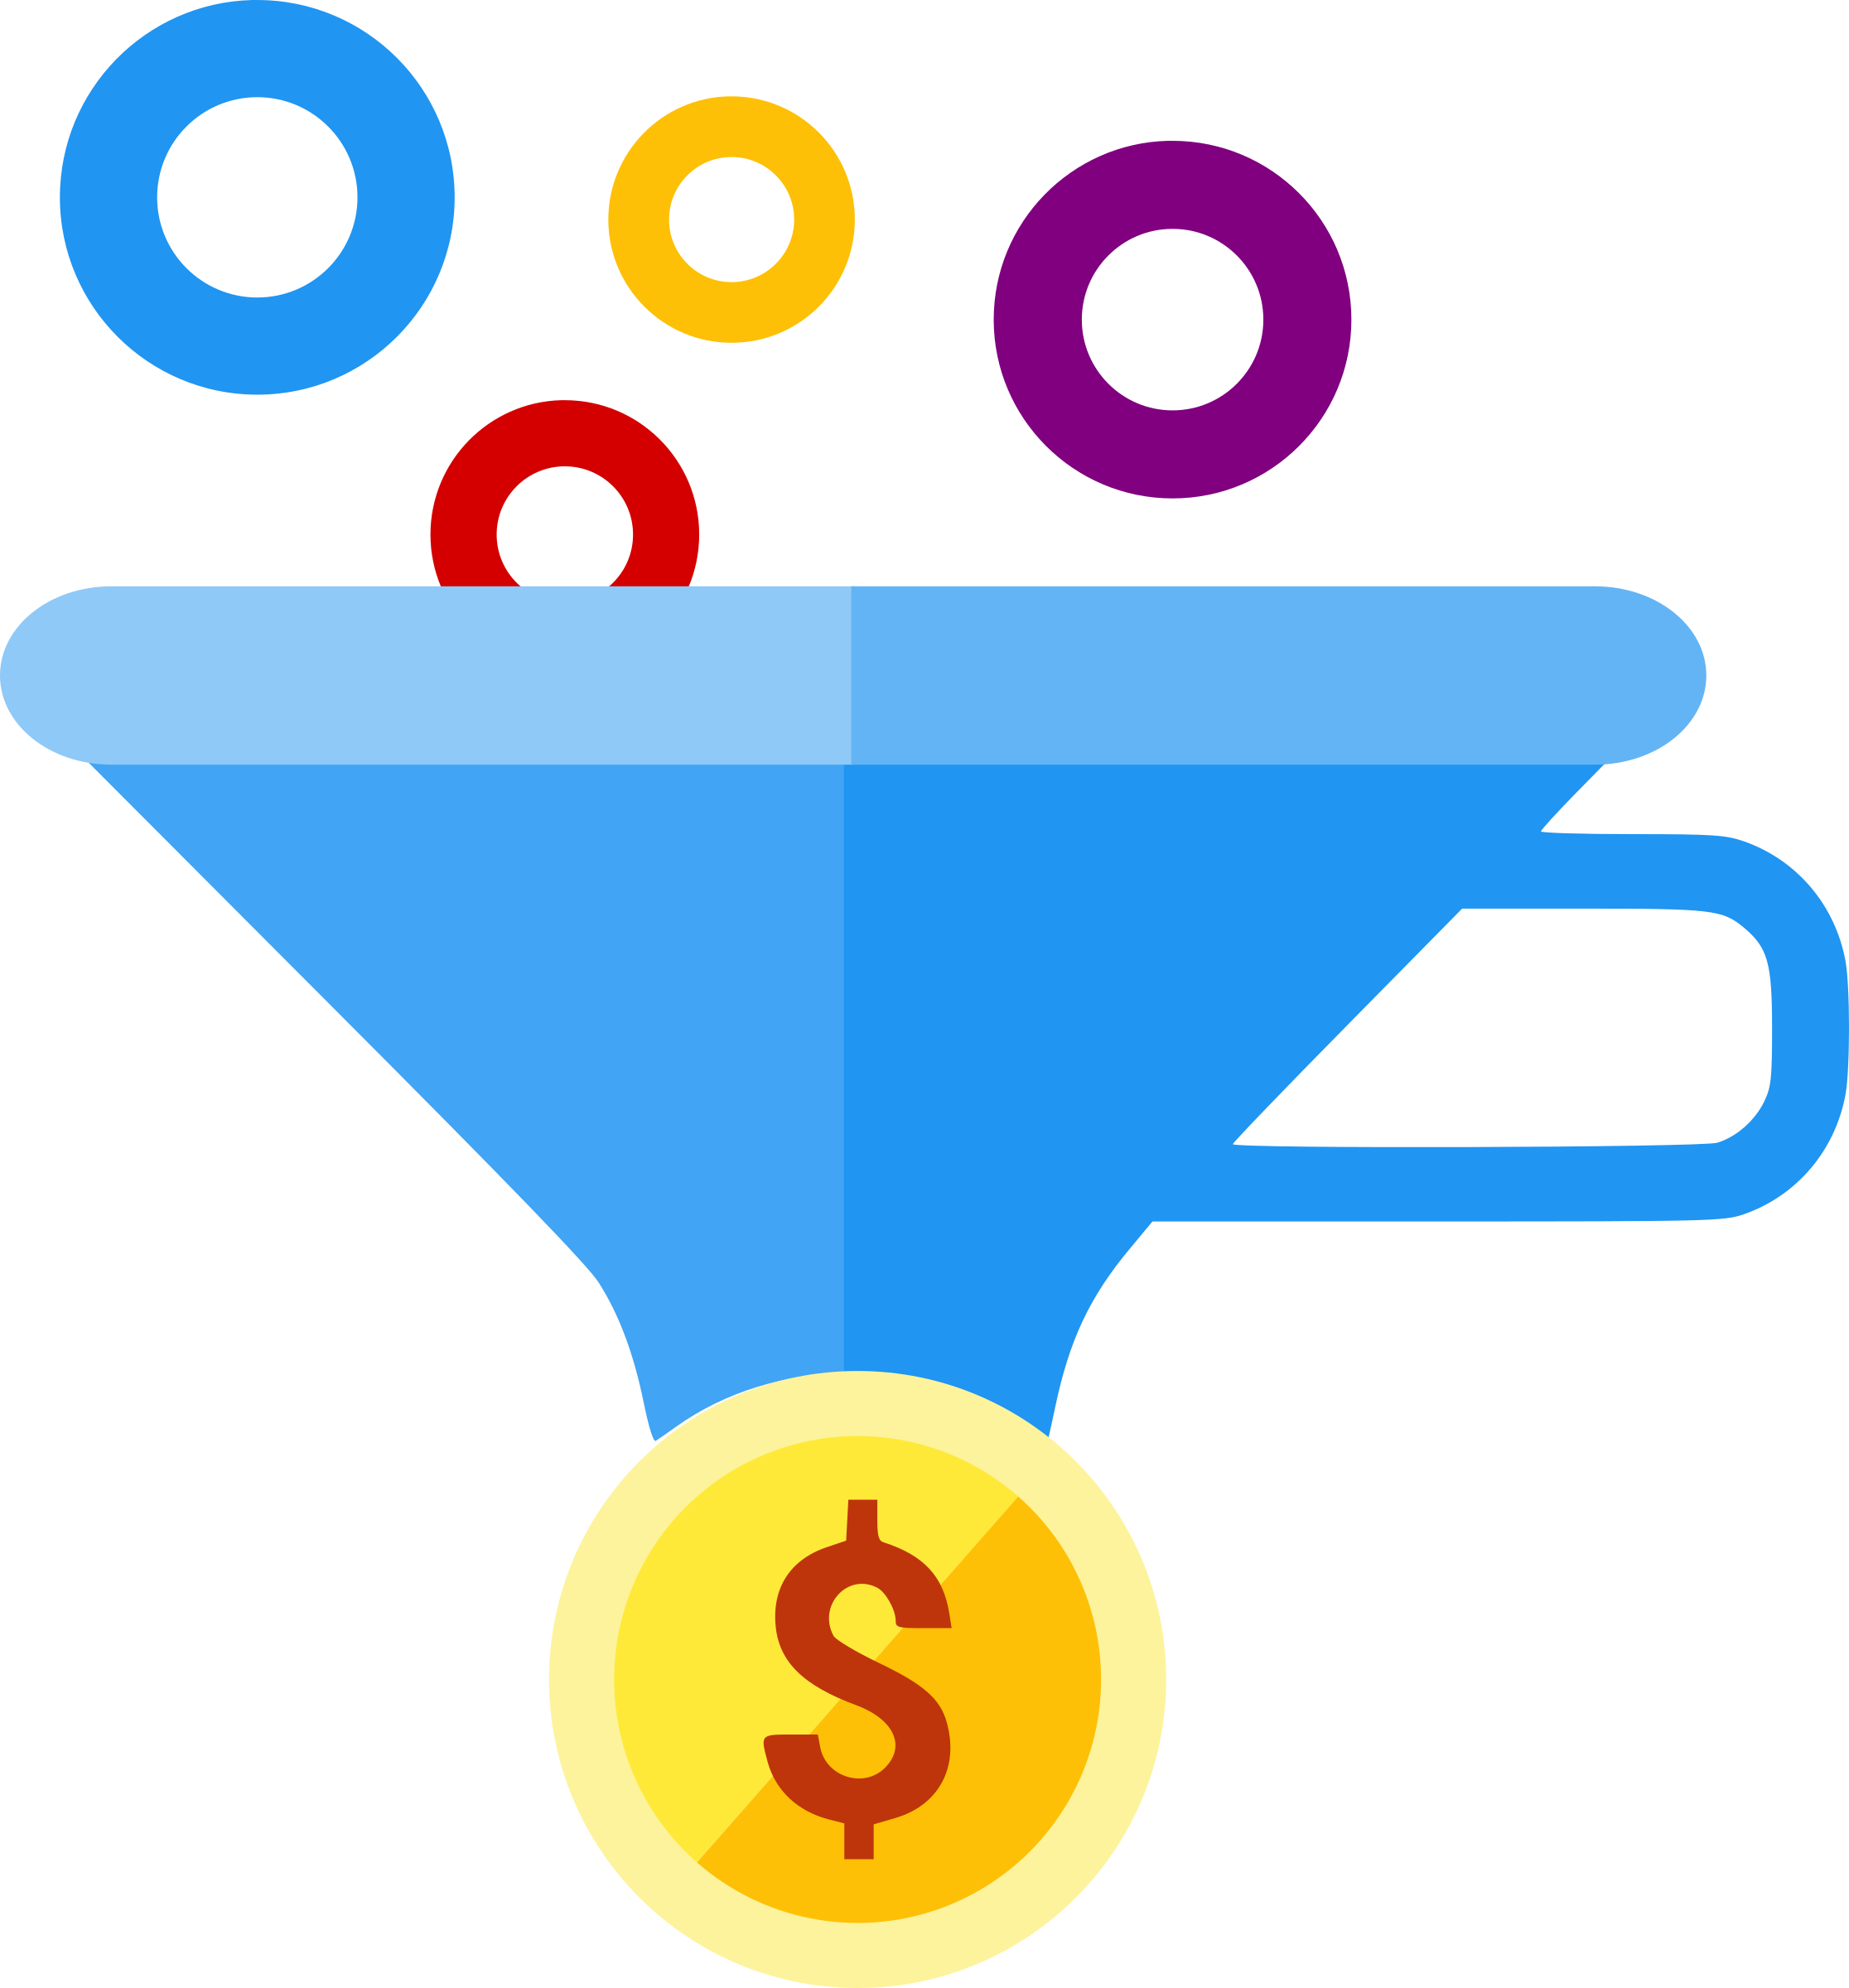 Conversion Funnel from OpenClipArt